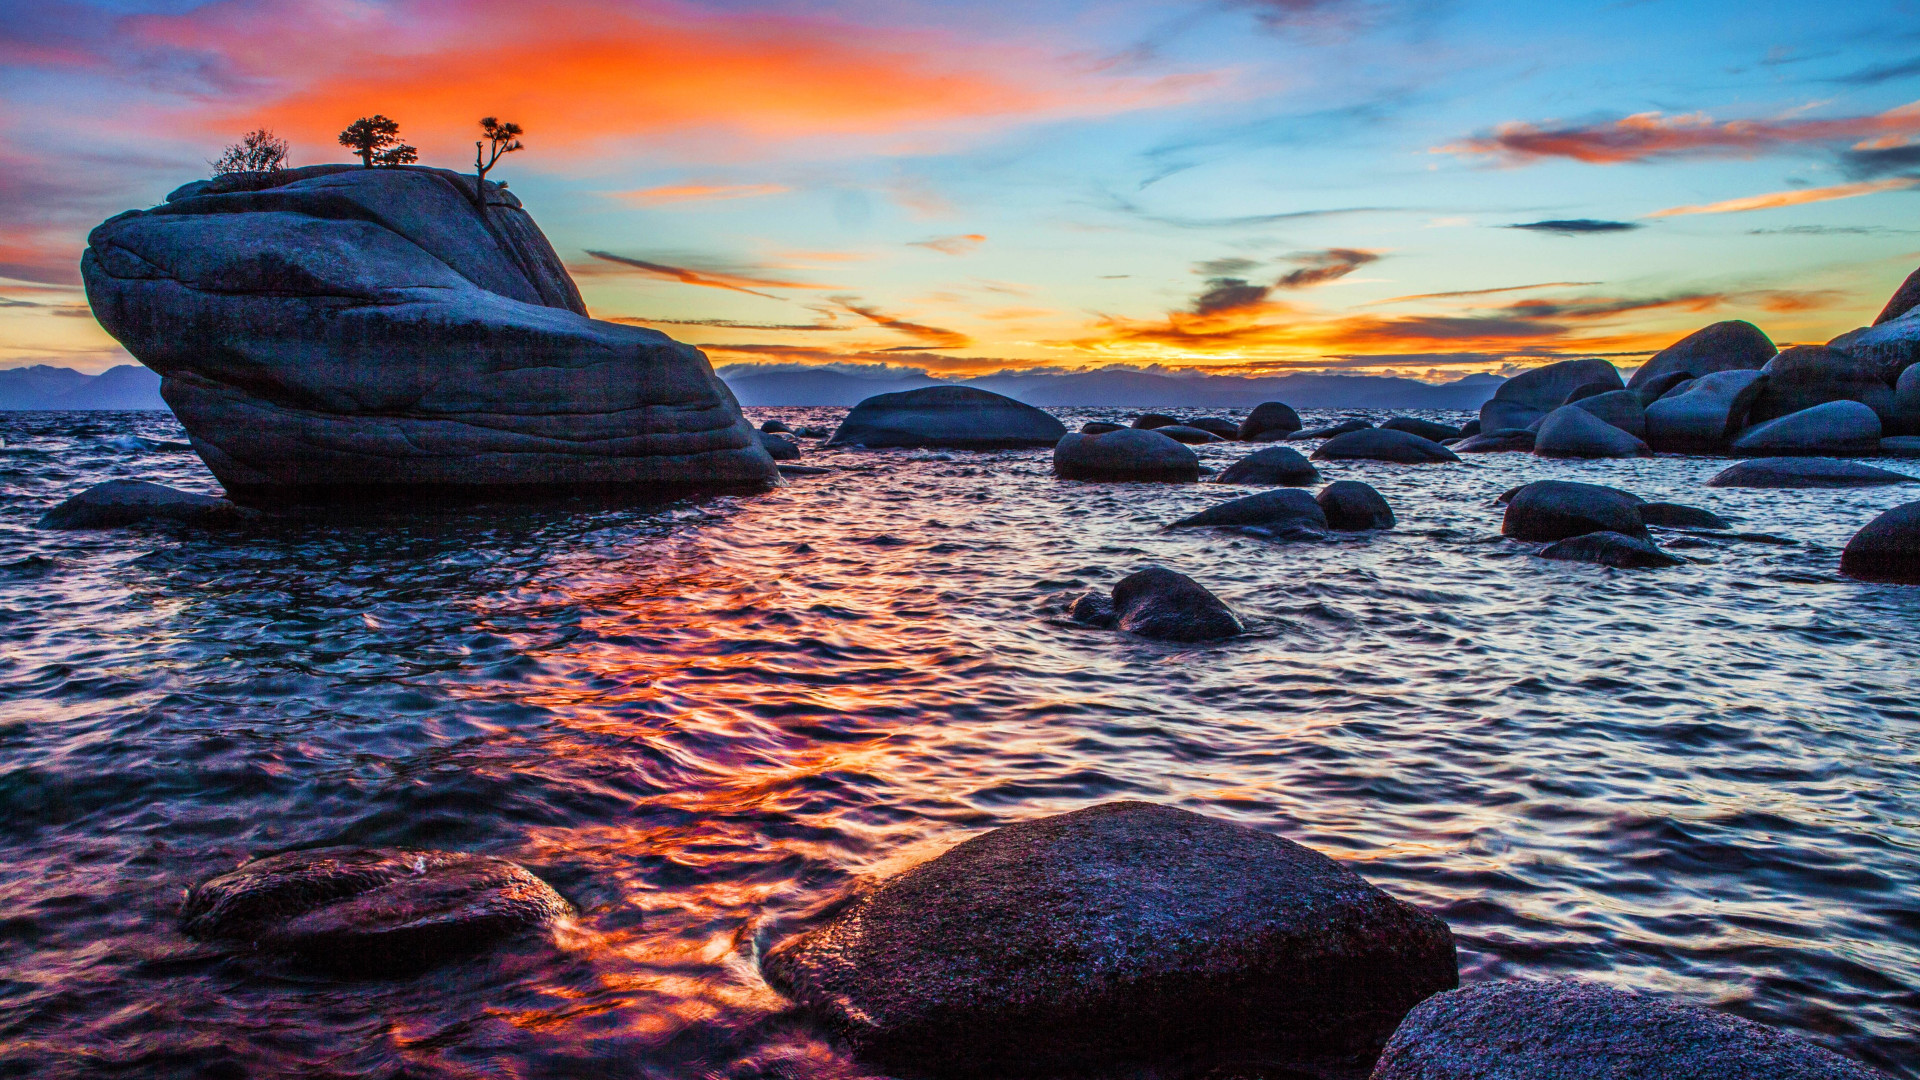 Bonsai Rock sunset at Lake Tahoe wallpaper 1920x1080